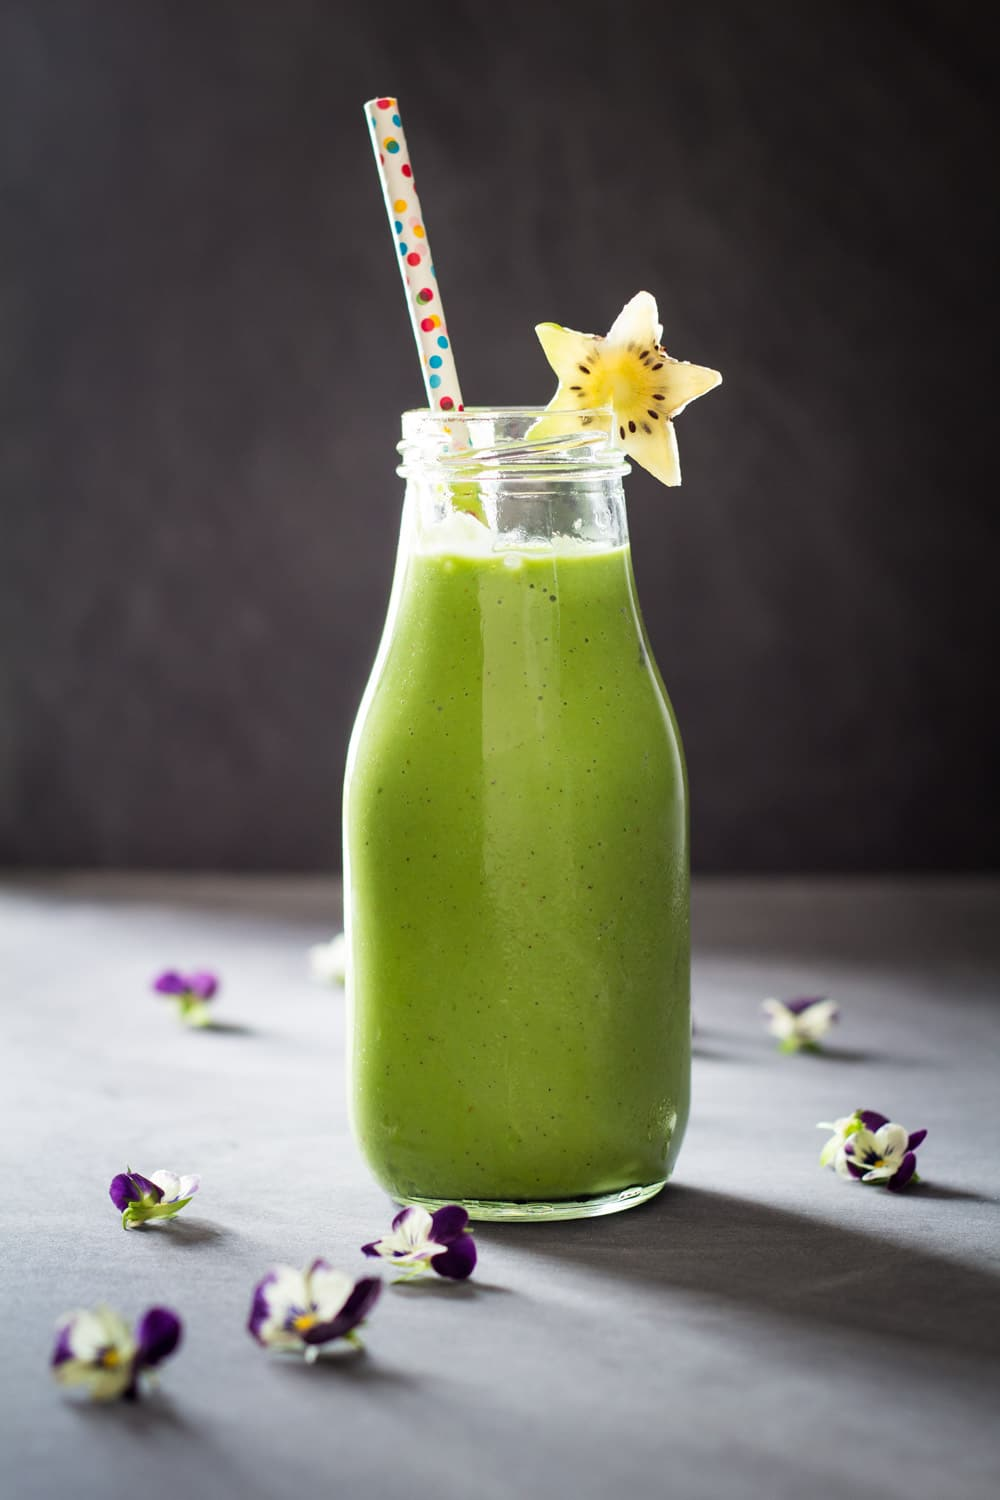 Green Smoothie For Kids in a glass bottle with a confetti straw and a star-shaped kiwi slice.